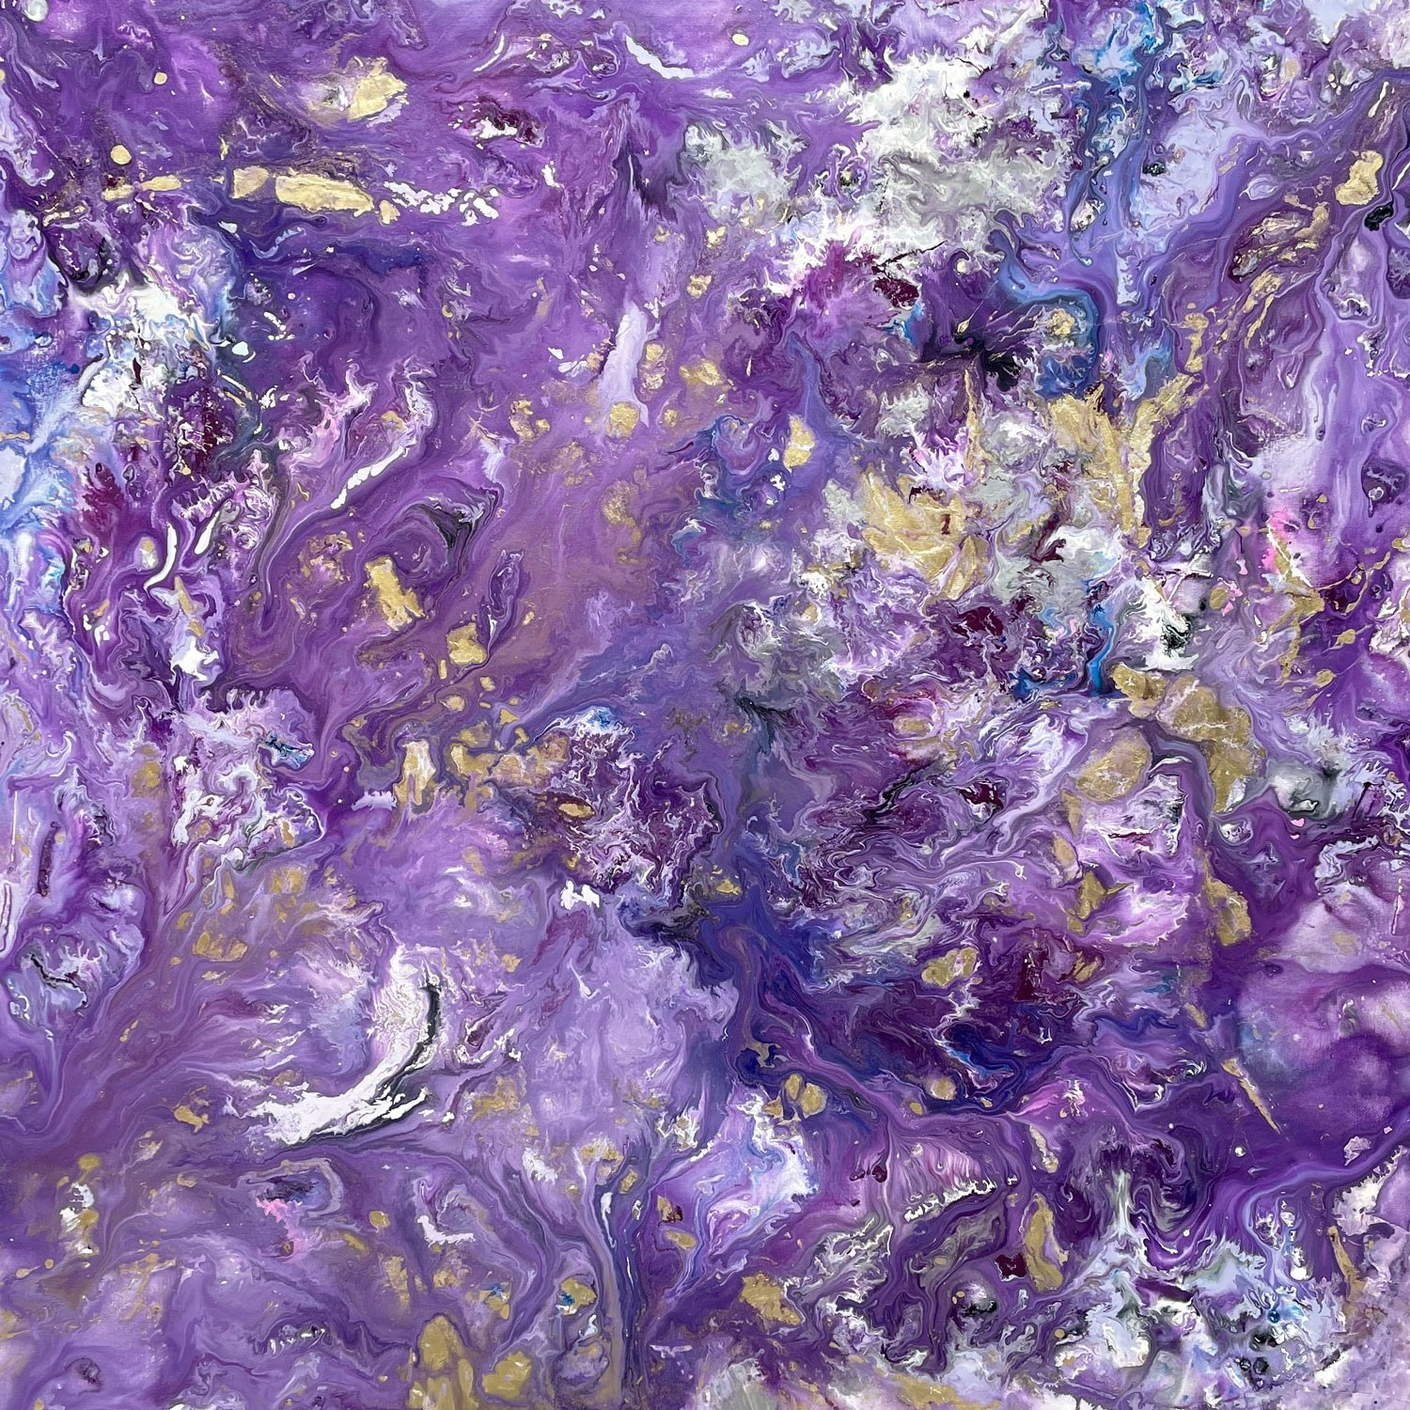 lilac and mauve abstract painting